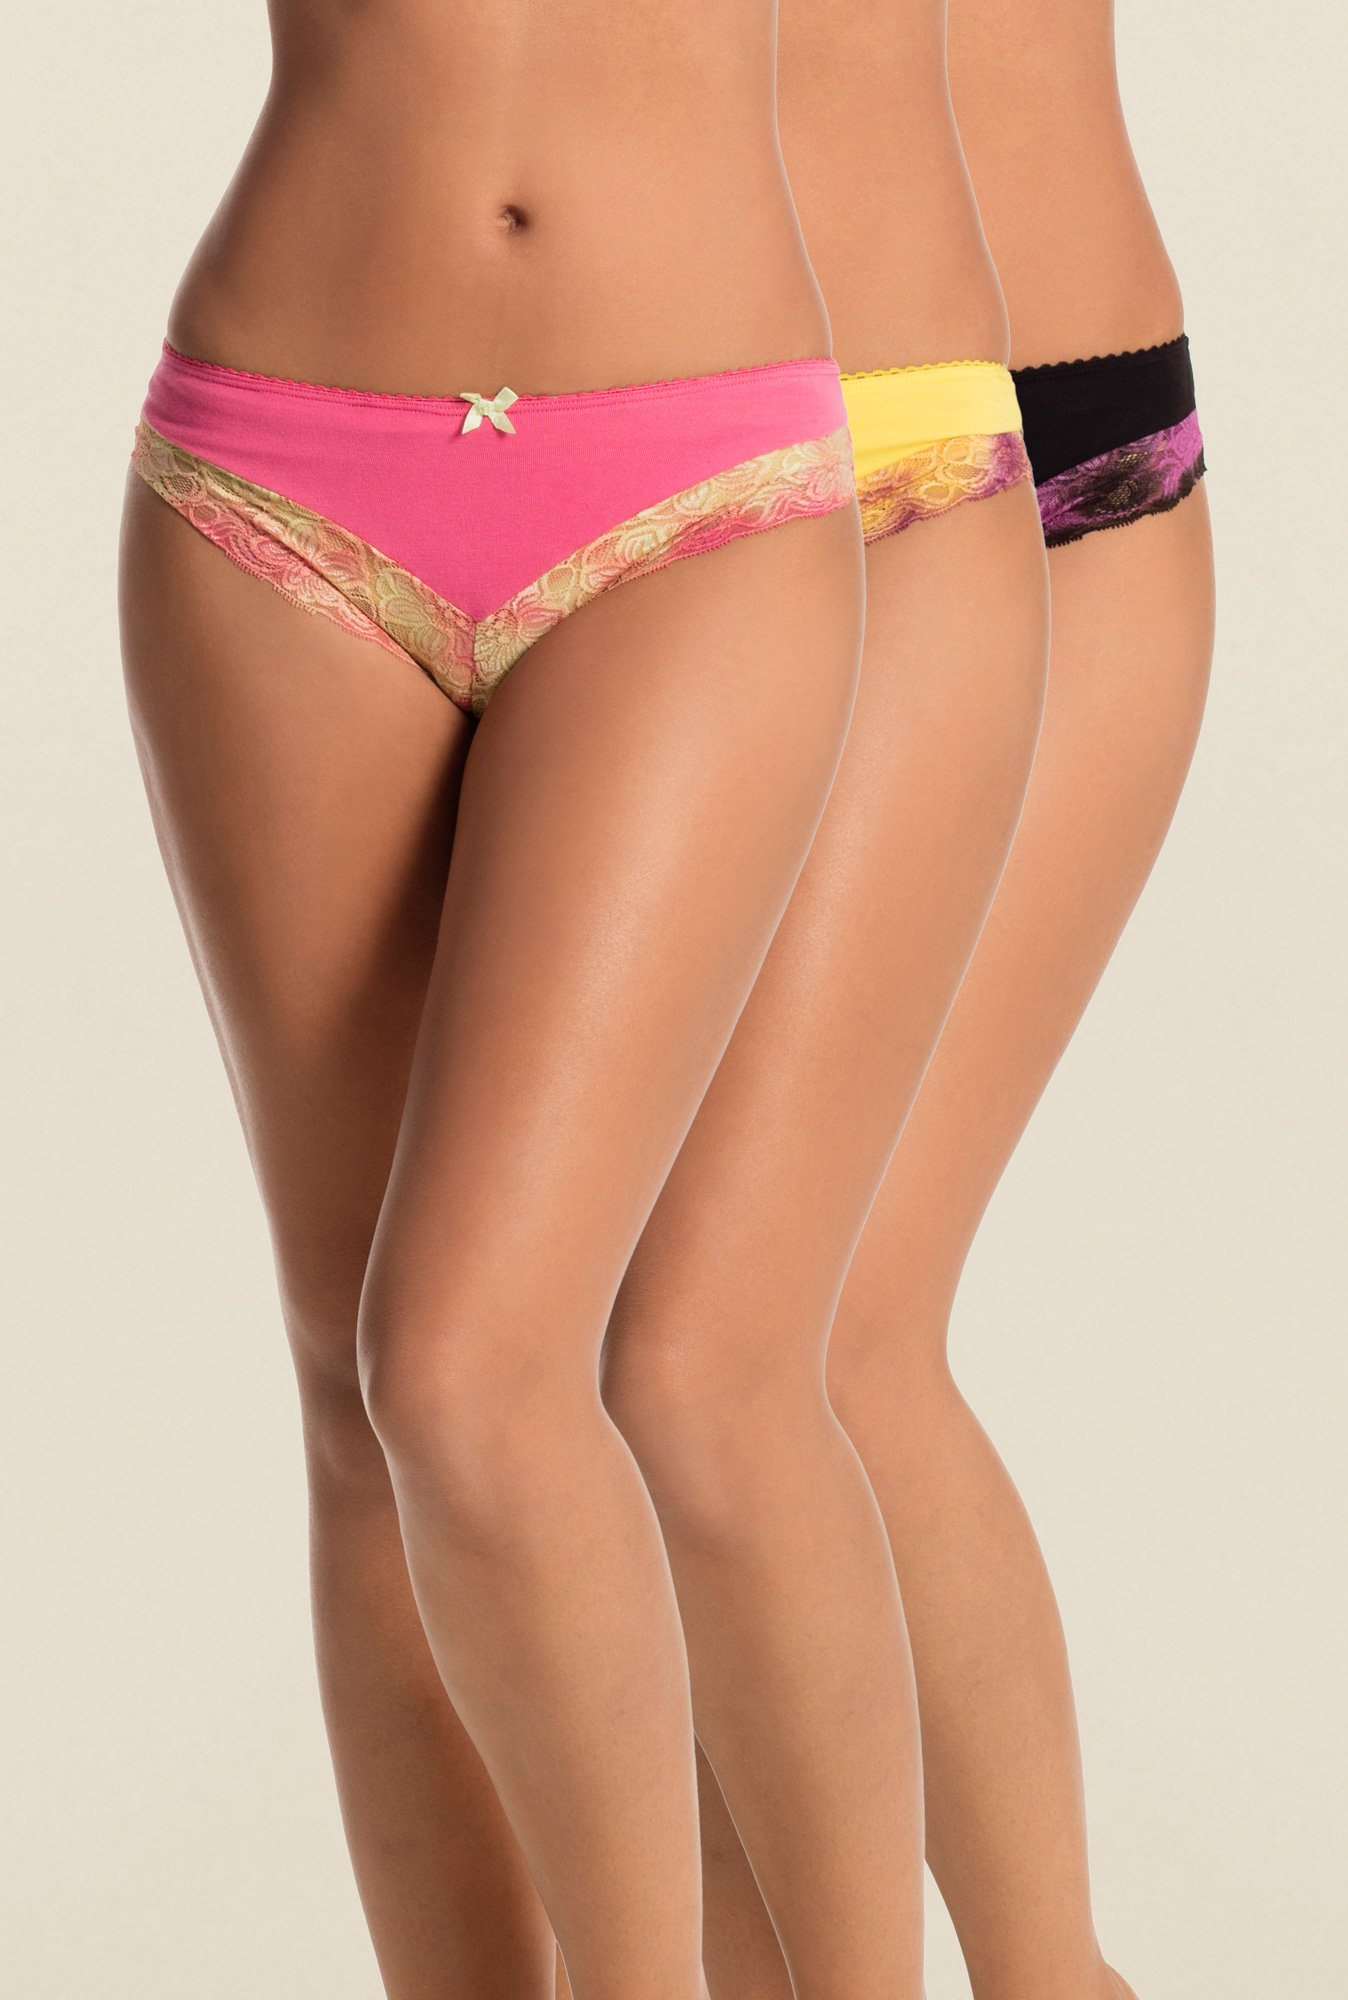 PrettySecrets Pink, Yellow & Black Hipster (Pack Of 3)